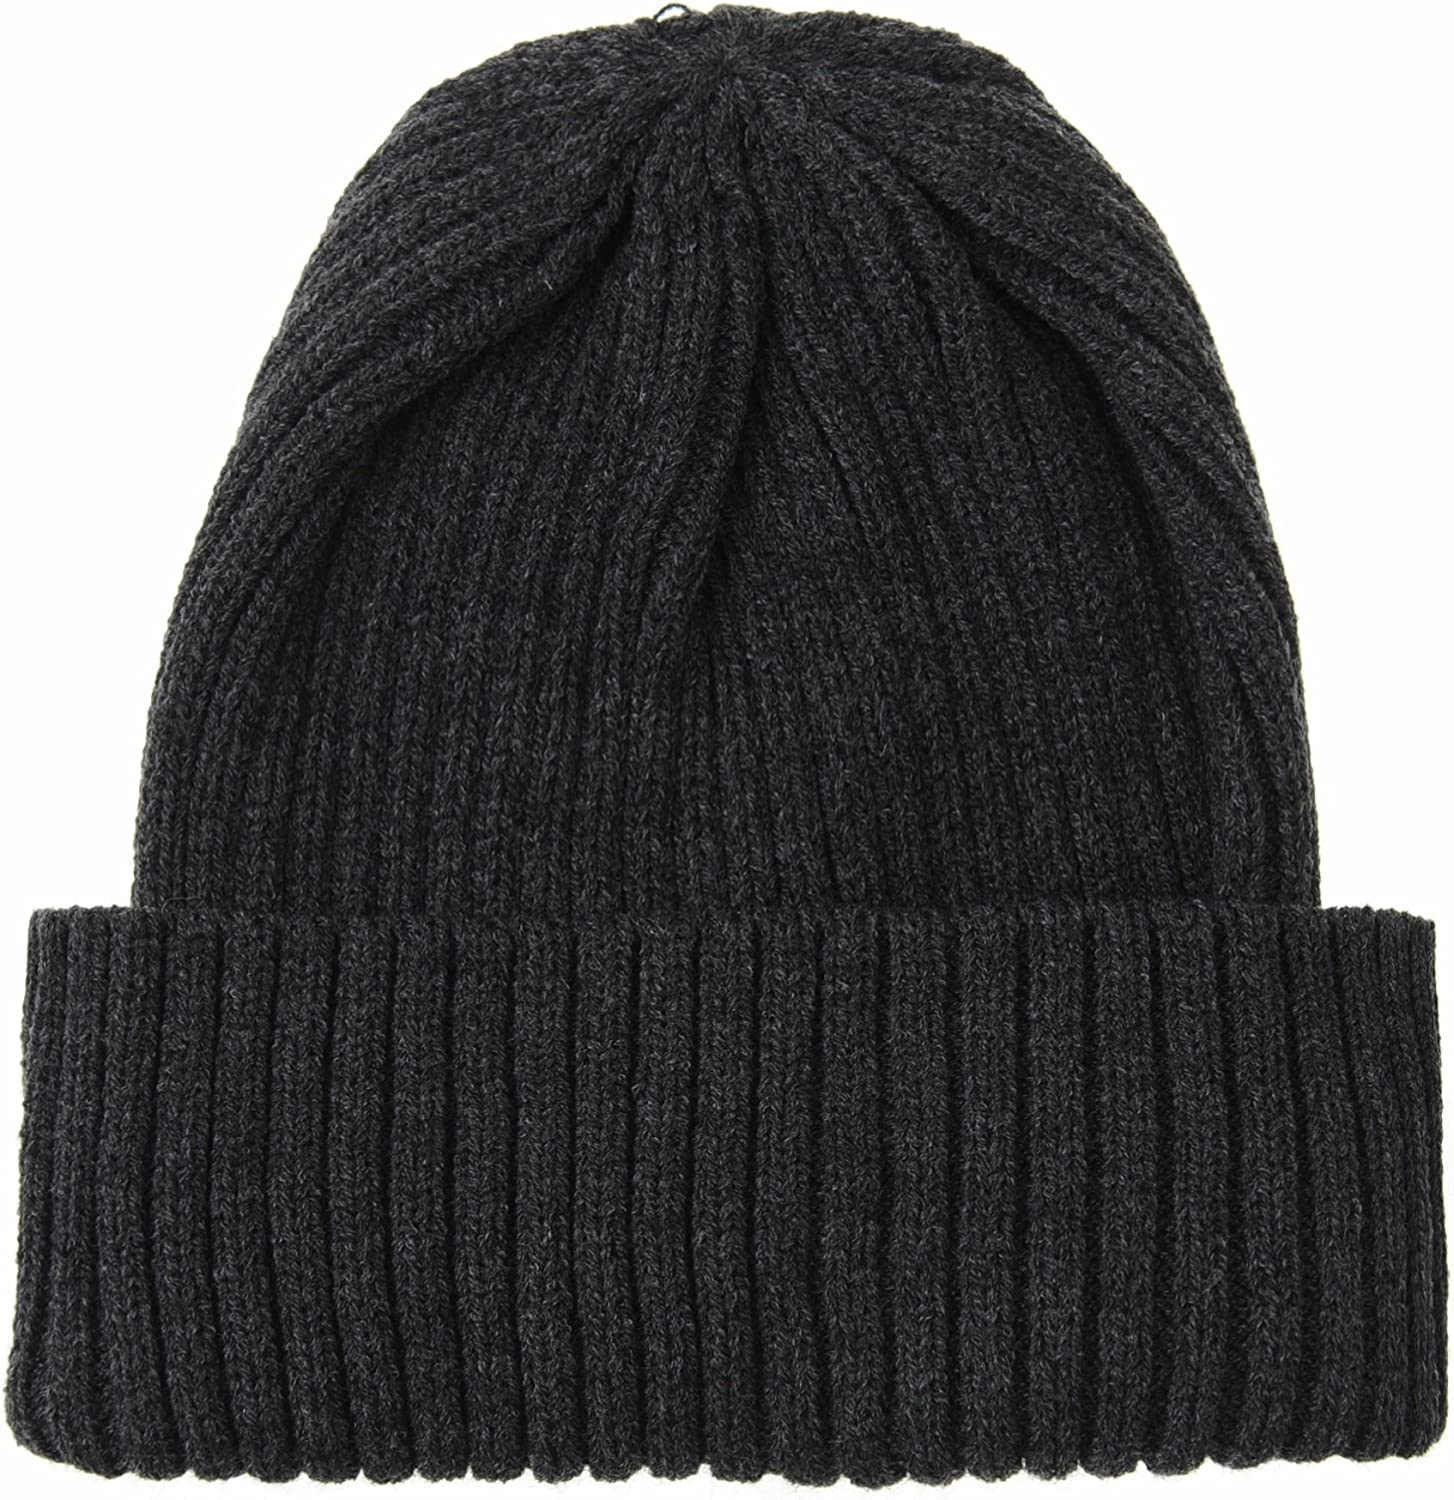 mens hat double knit pdf pattern womens hat unisex hat and mitts UNISEX MITTS No 2818 knitted in 8 ply in broken rib pattern BEANIE